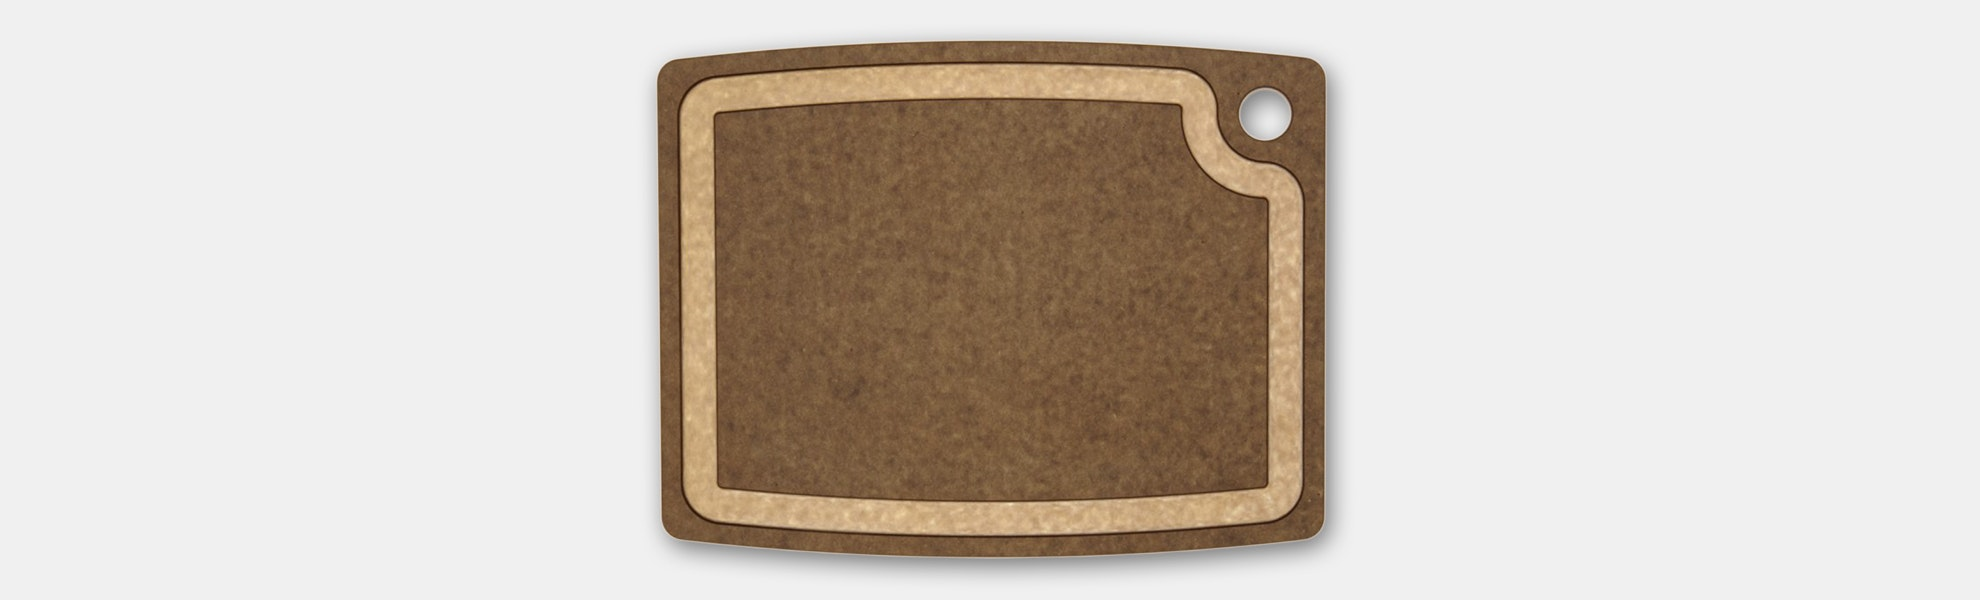 Epicurean Gourmet Series Cutting Boards